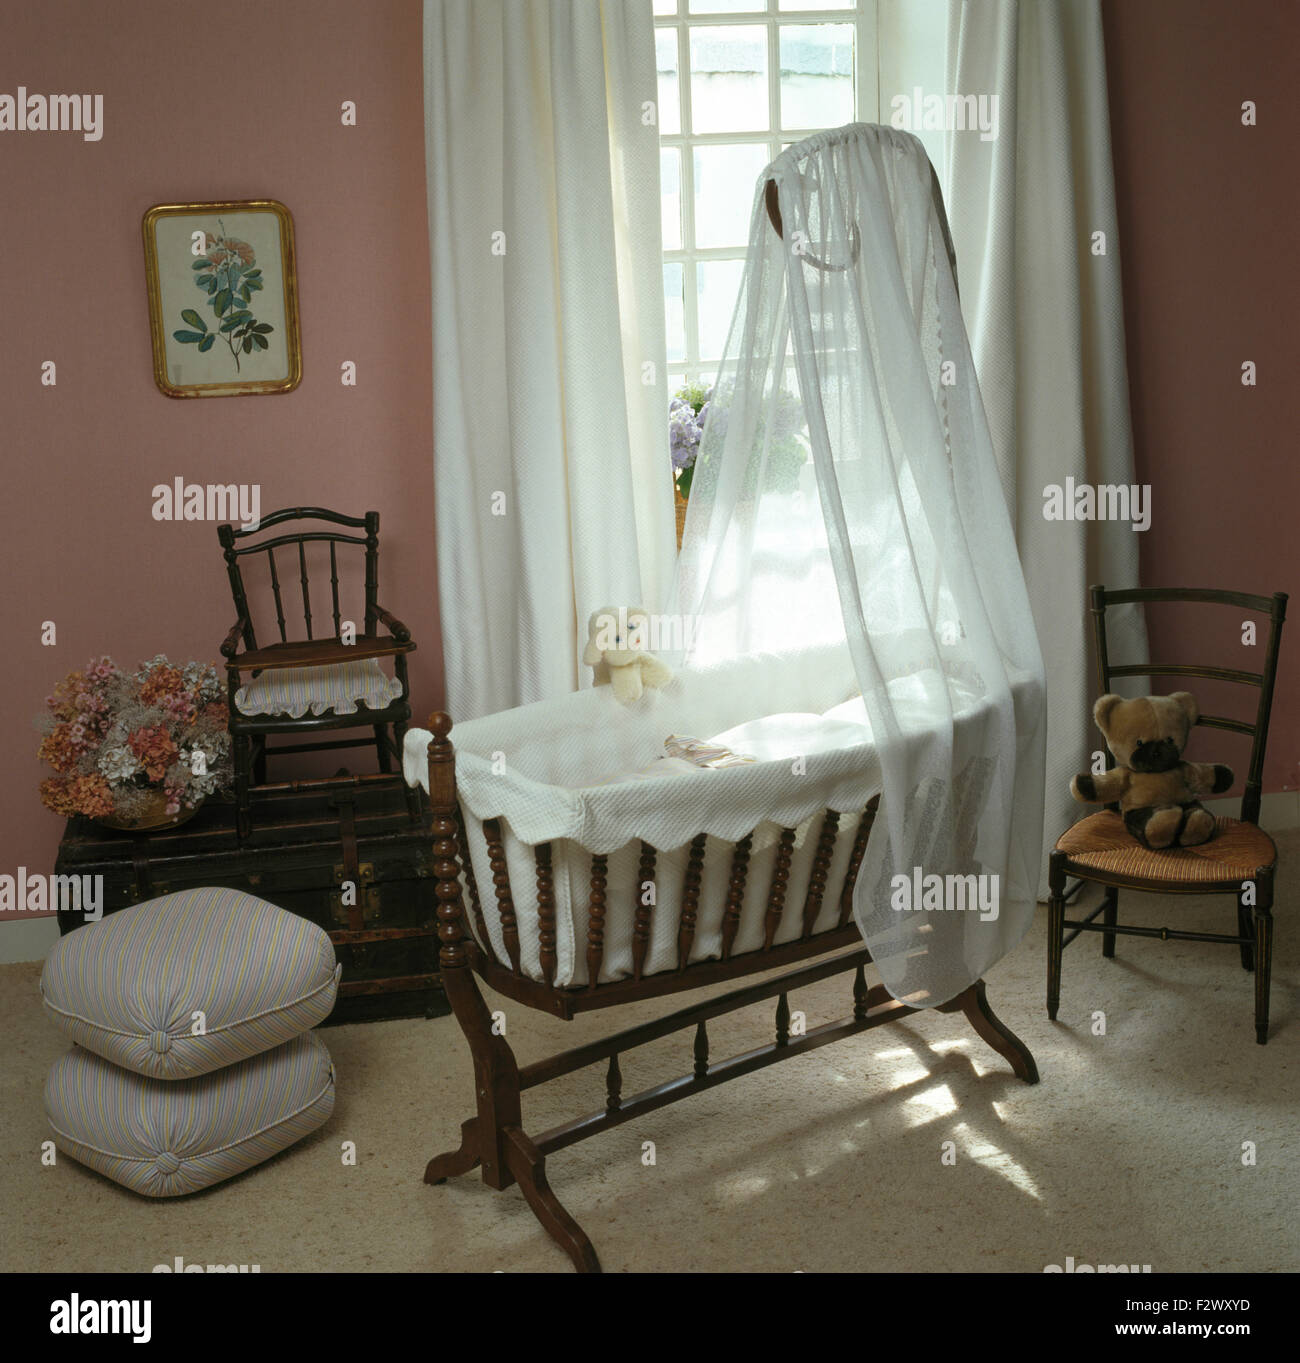 White Voile Drapes On A Victorian Style Rocking Cradle In Eighties